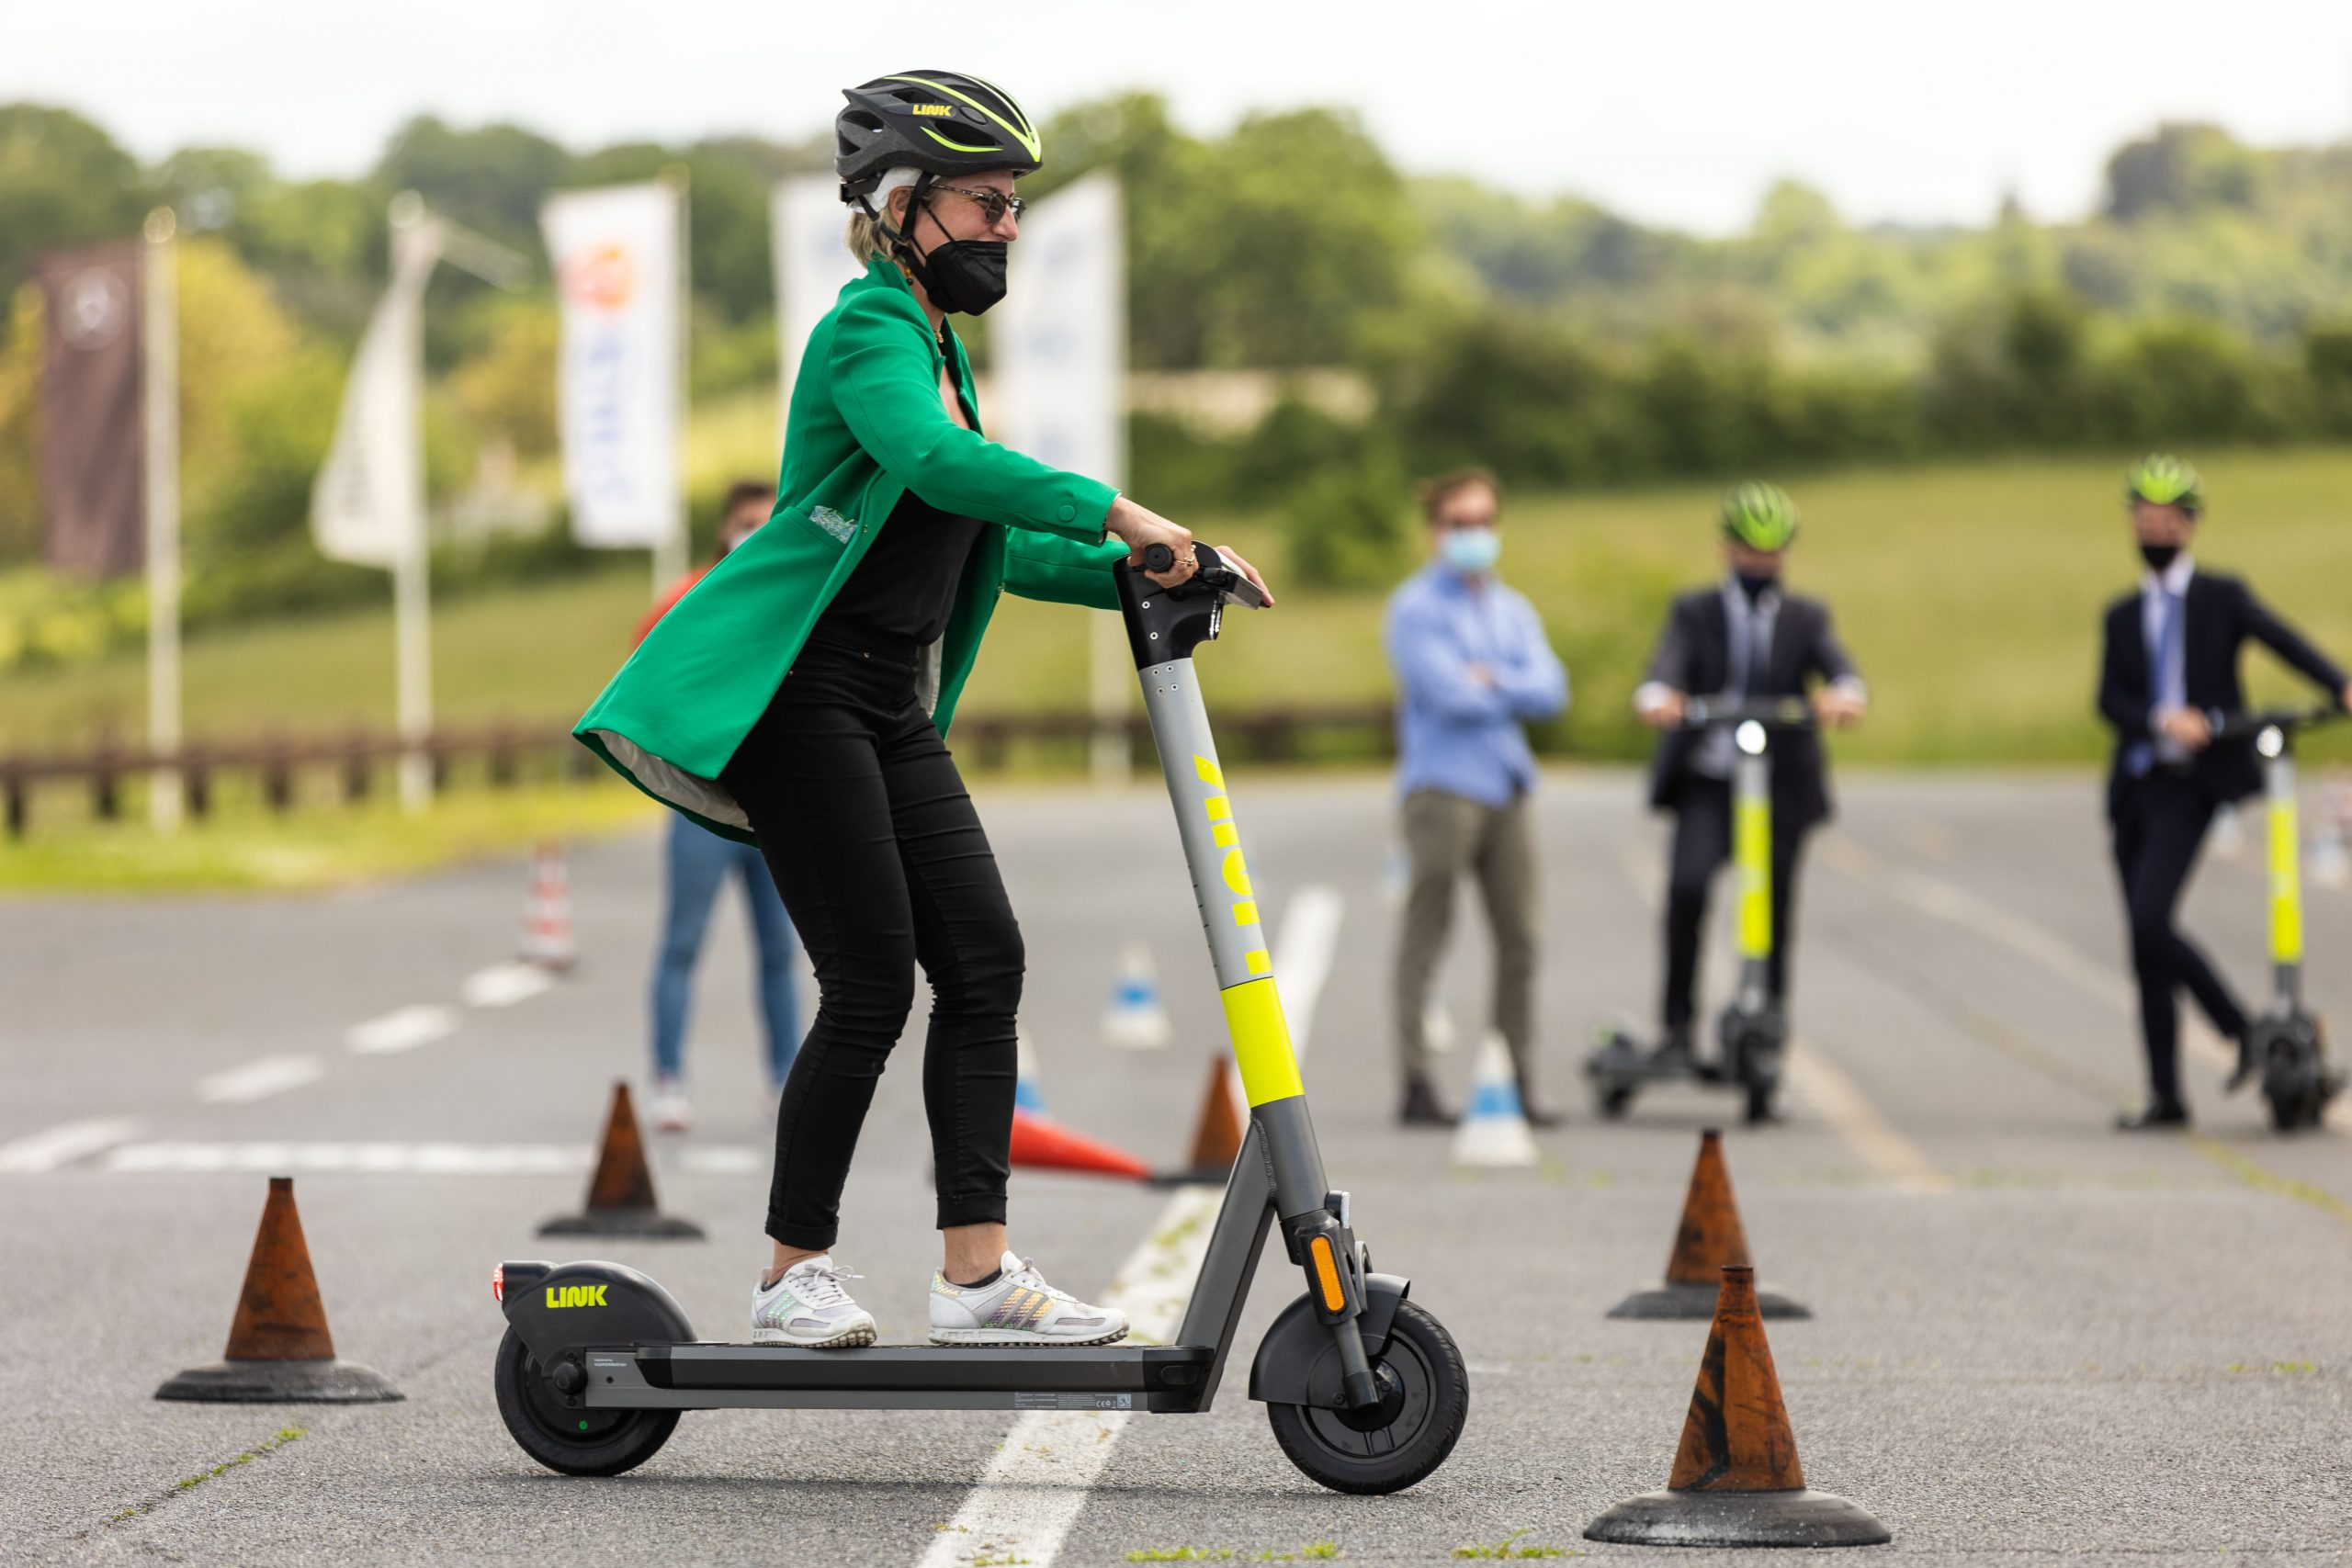 Superpedestrian partners with automotive club to launch e-scooter training course